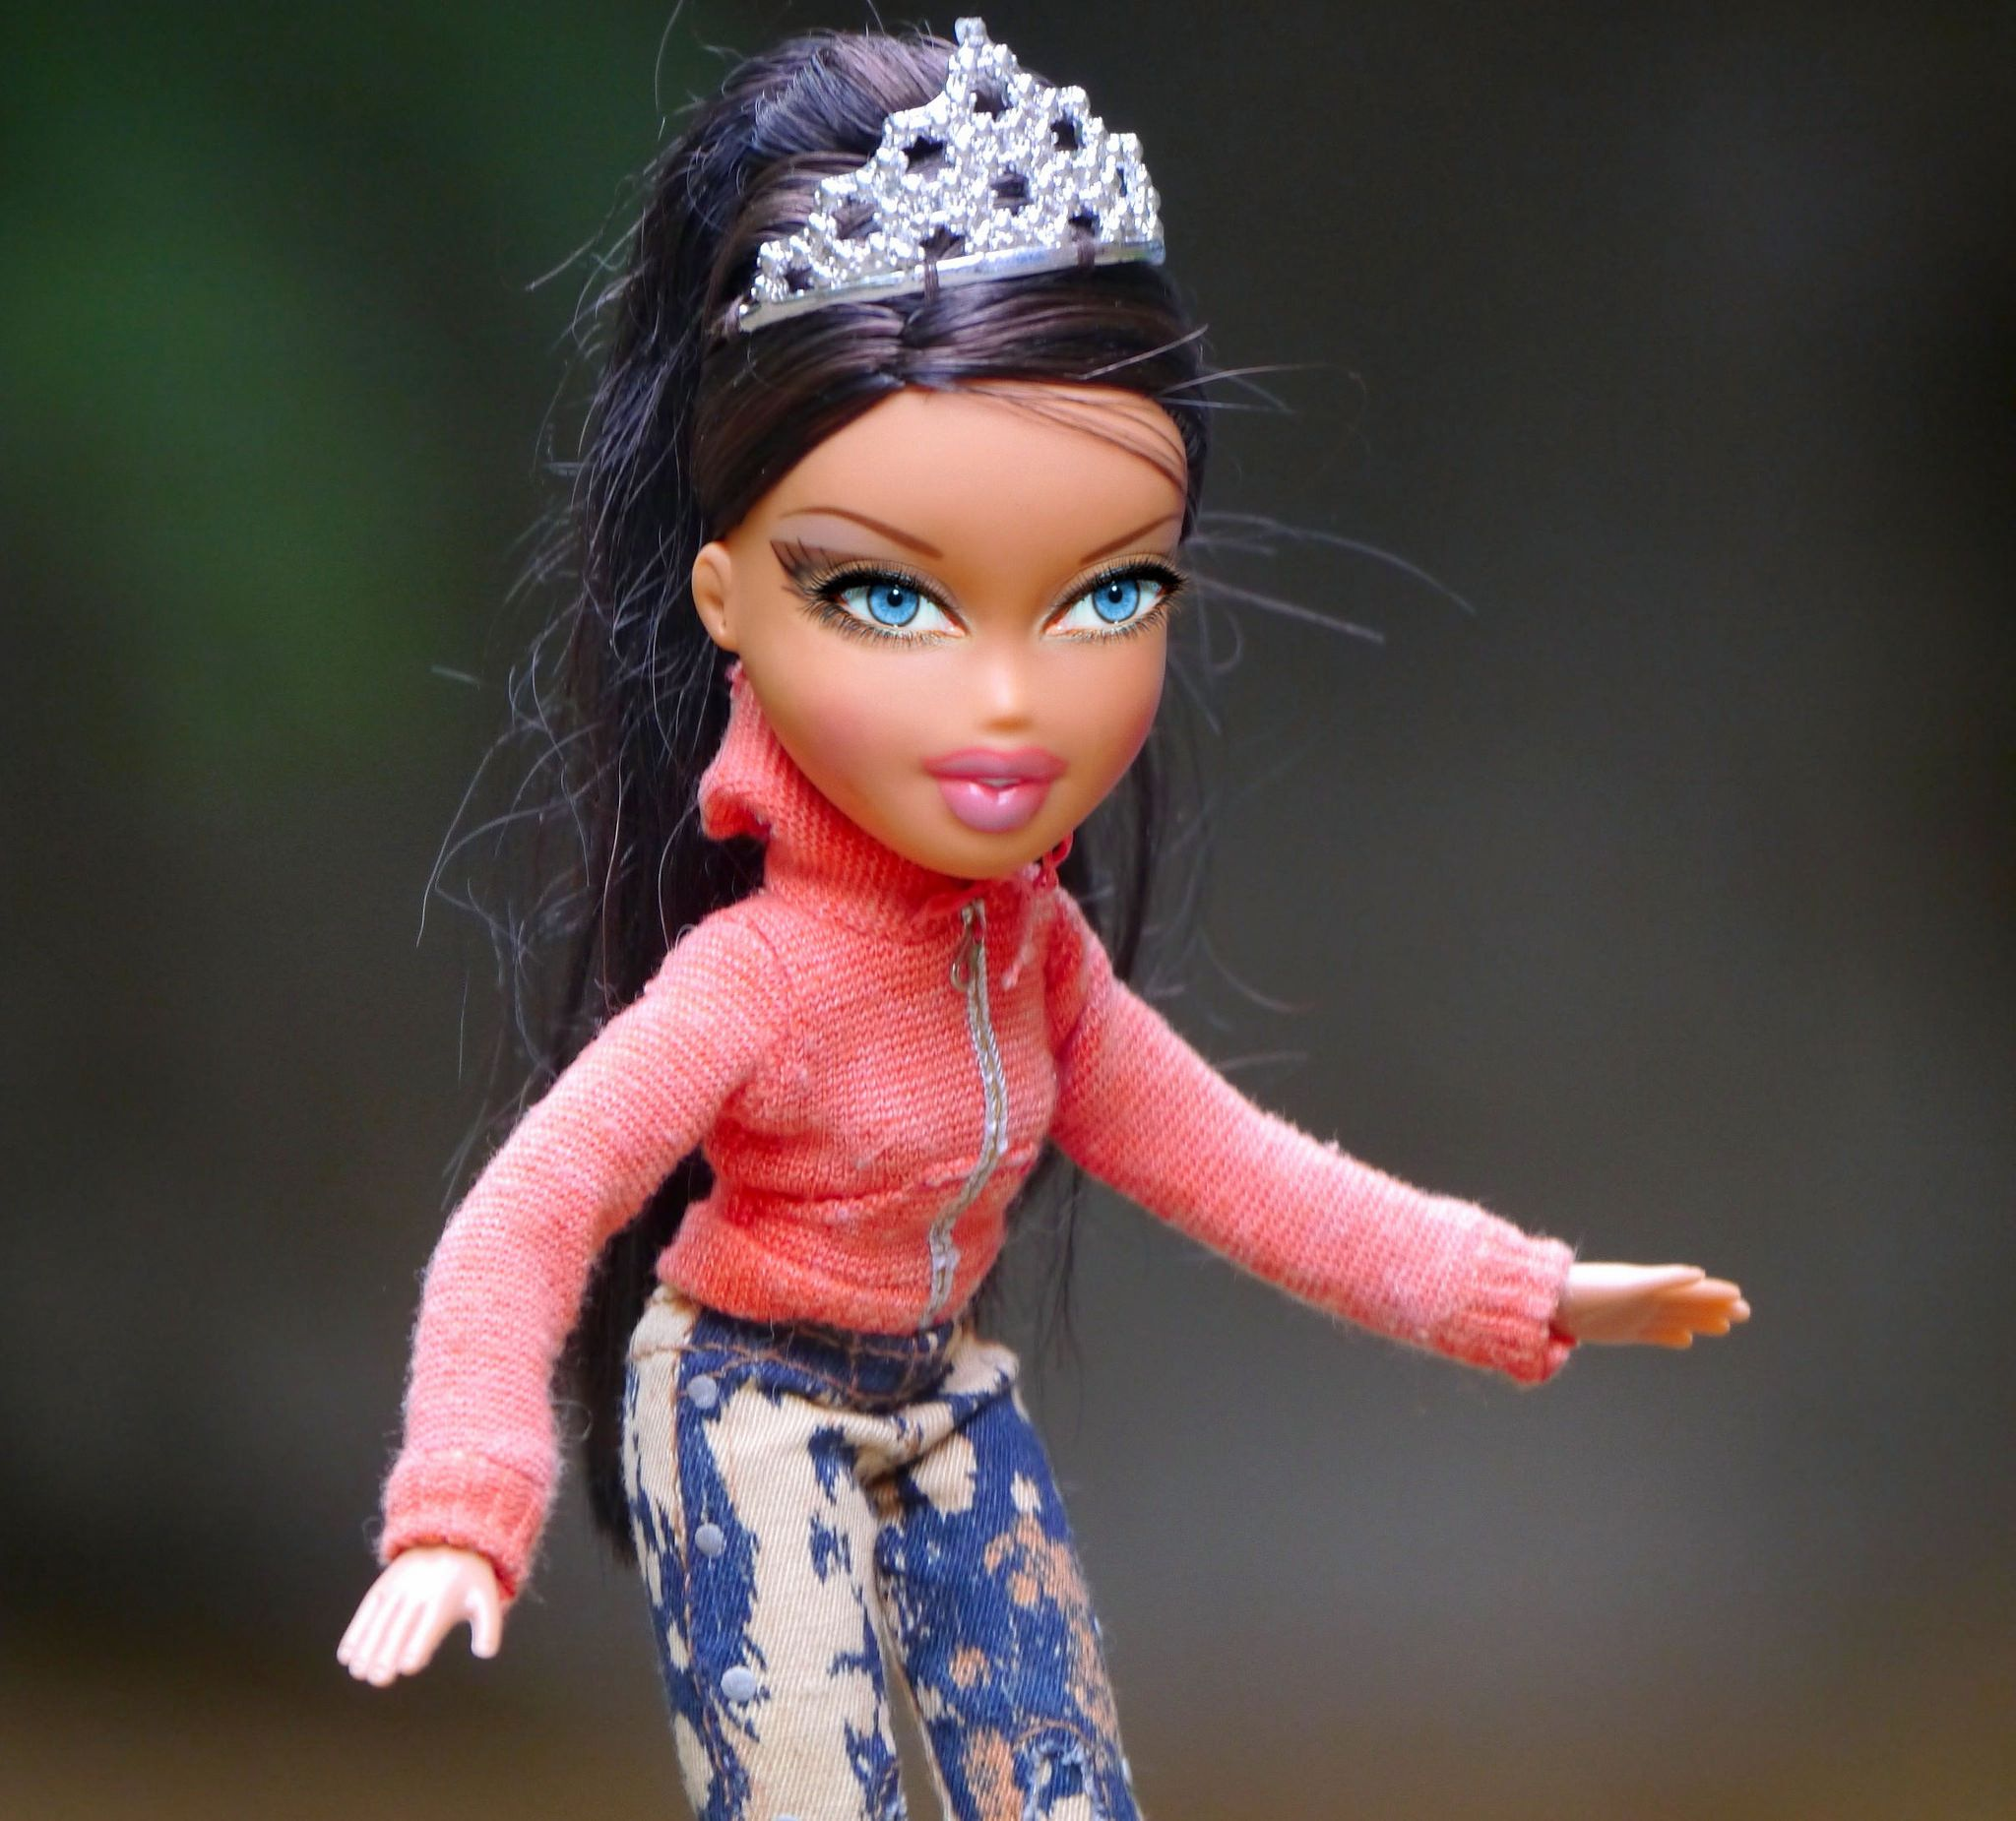 https://flic.kr/p/BWN3Er | Bratz Doll Craze | Remember how the Bratz doll almost killed the Barbie doll... I dolled this one up with real eyes.... I know some little girls who would like to have a doll like this...